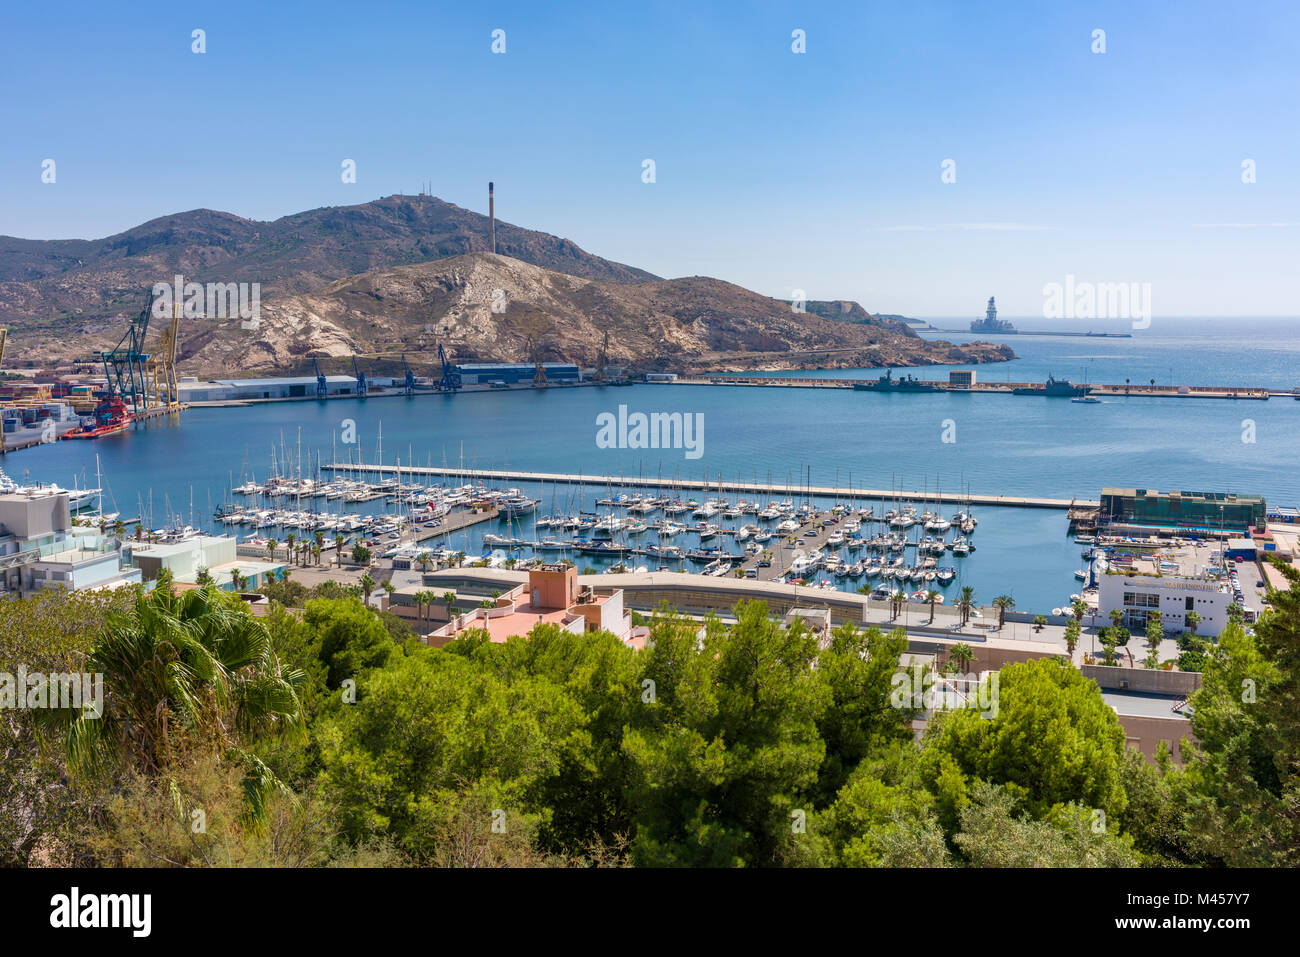 Cartagena spain castle stock photos cartagena spain for City of la 457